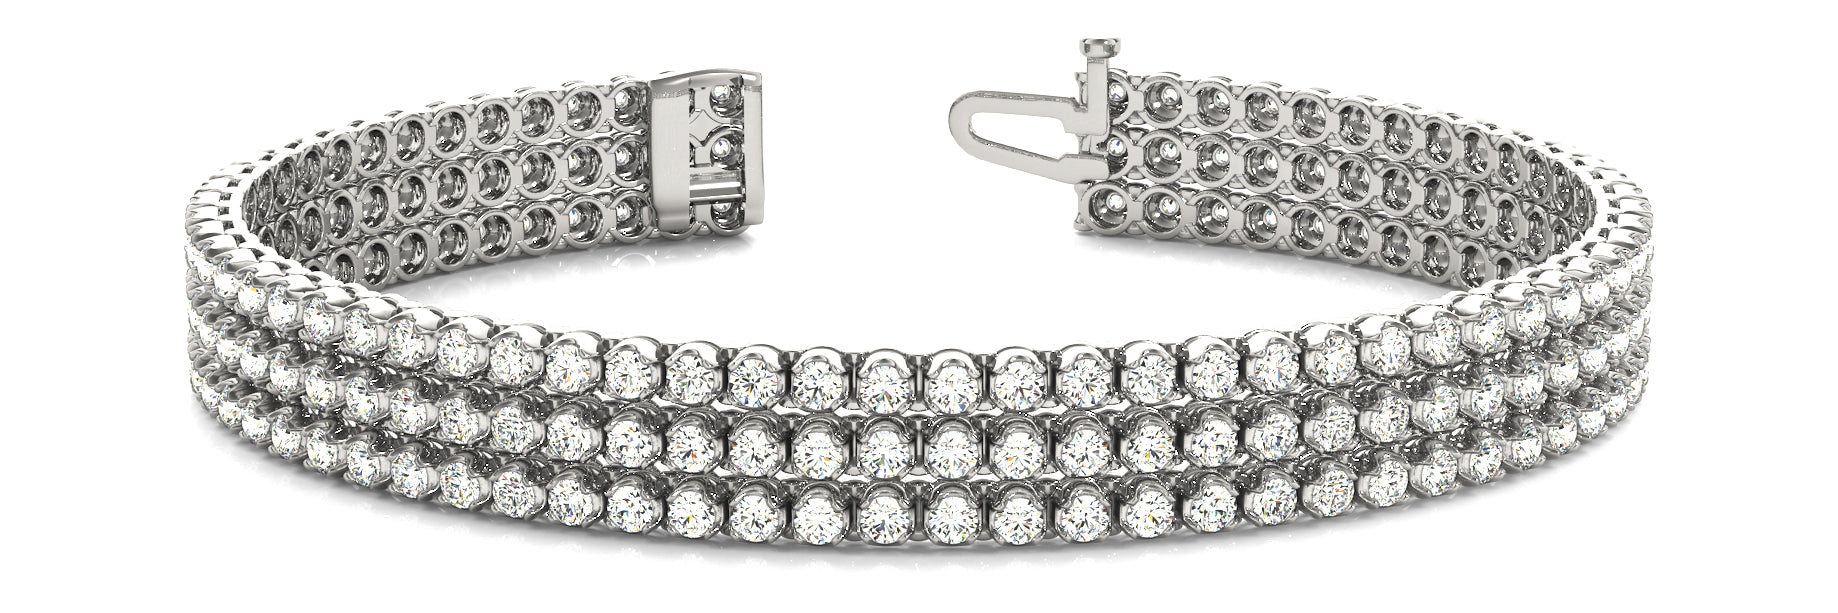 Line Diamond Bracelet 4.39ct tw Ladies - 14kt White Gold